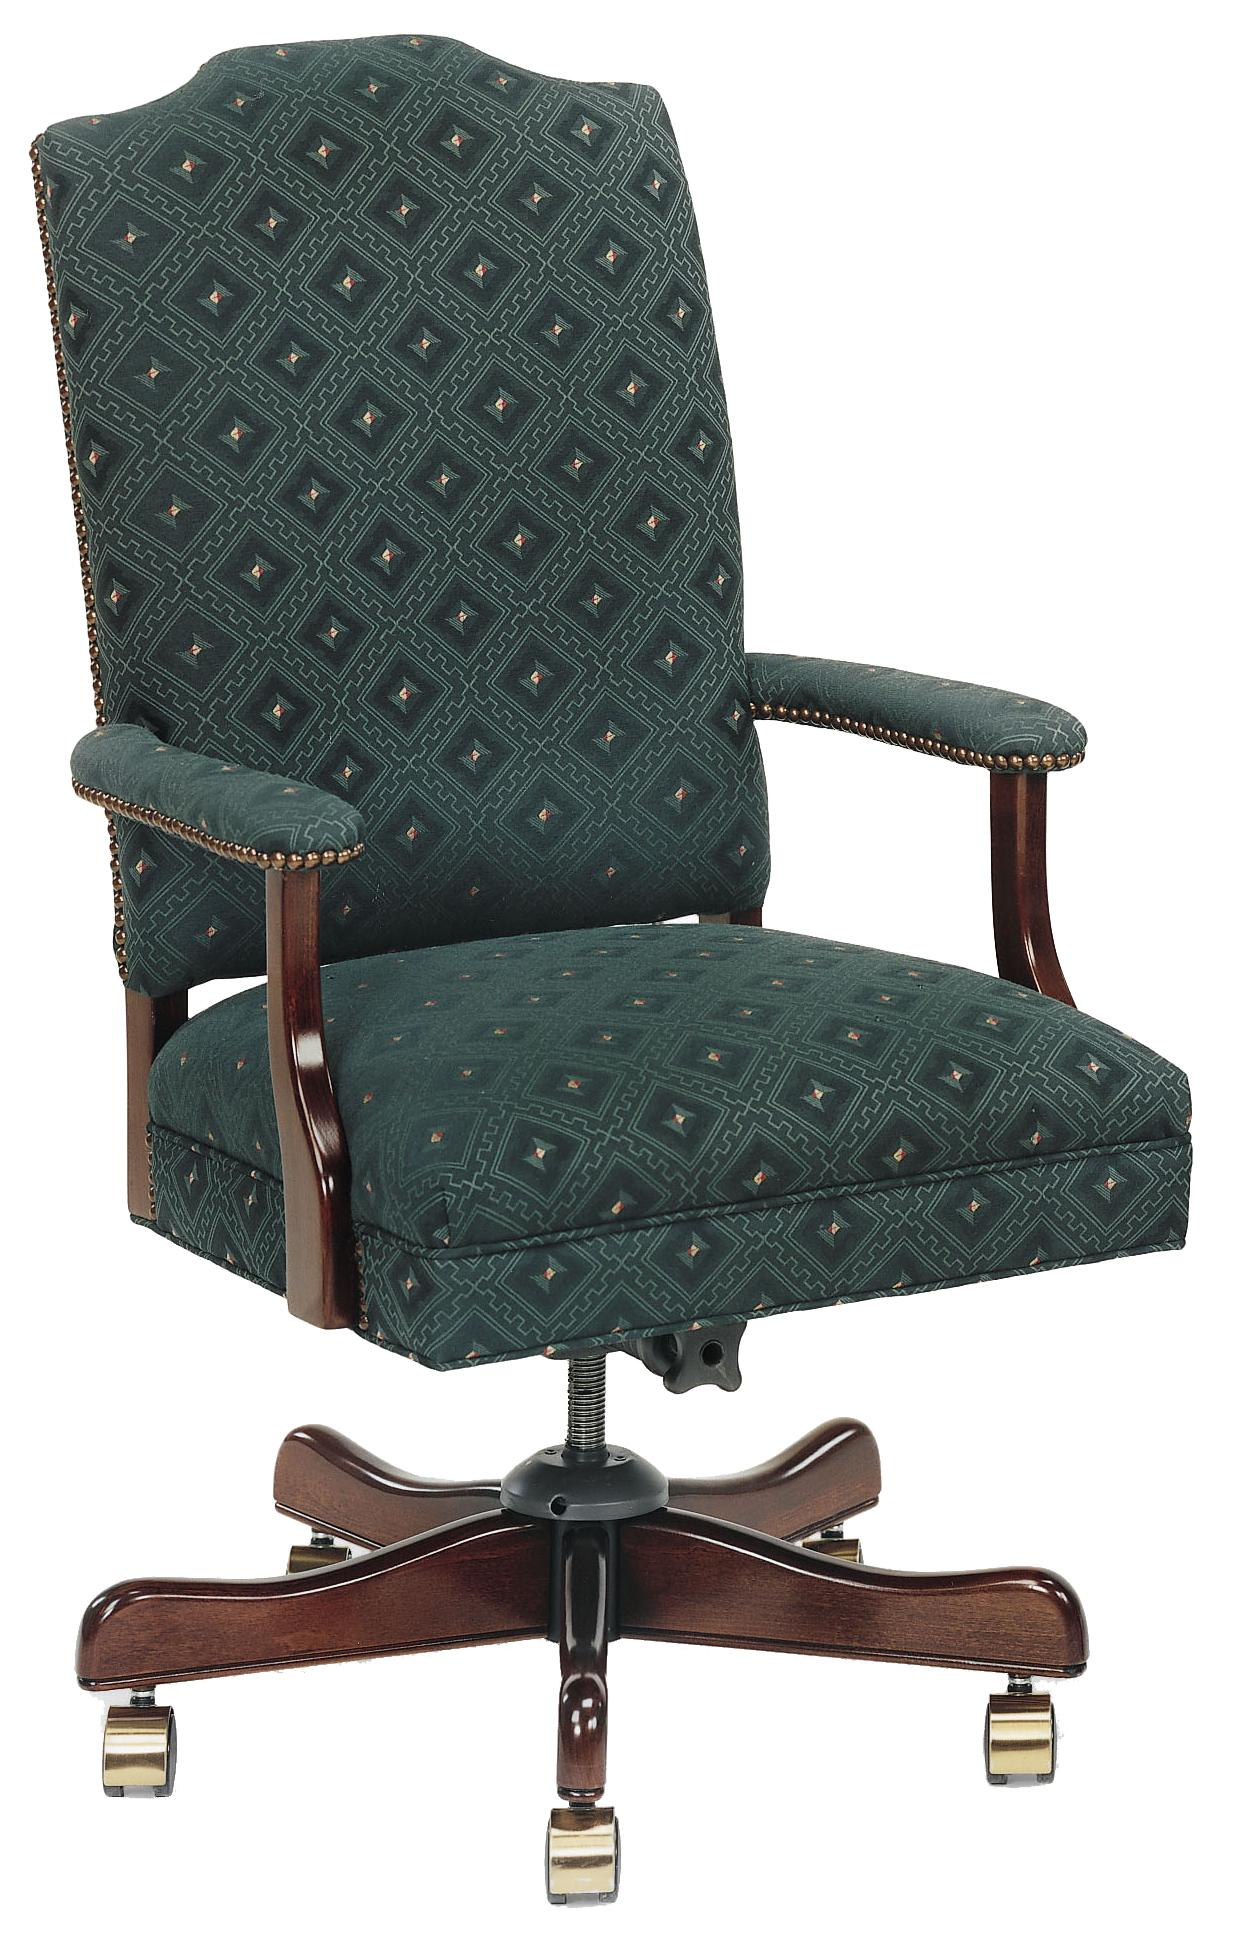 Awesome Fairfield Office Furnishings Camel Back Office Chair On Inzonedesignstudio Interior Chair Design Inzonedesignstudiocom